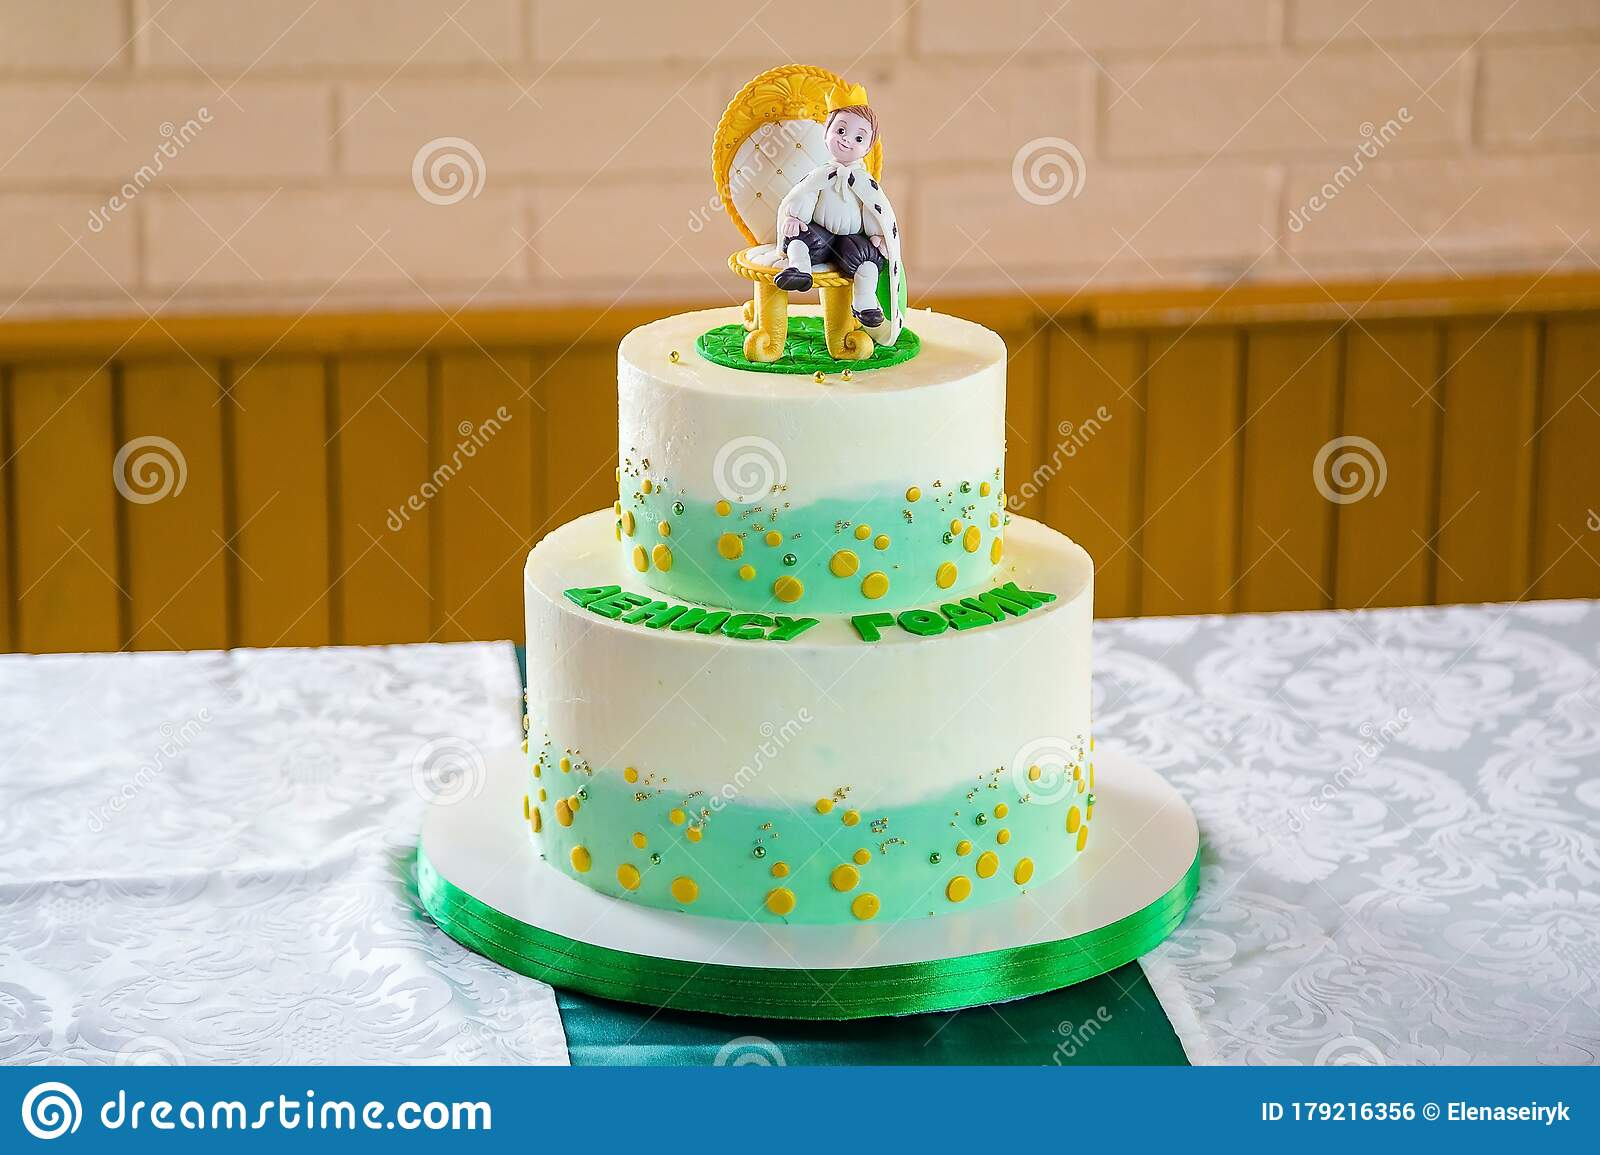 Super Birthday Cake For Boy With Little Prince Character Sugar Mastic Funny Birthday Cards Online Inifodamsfinfo